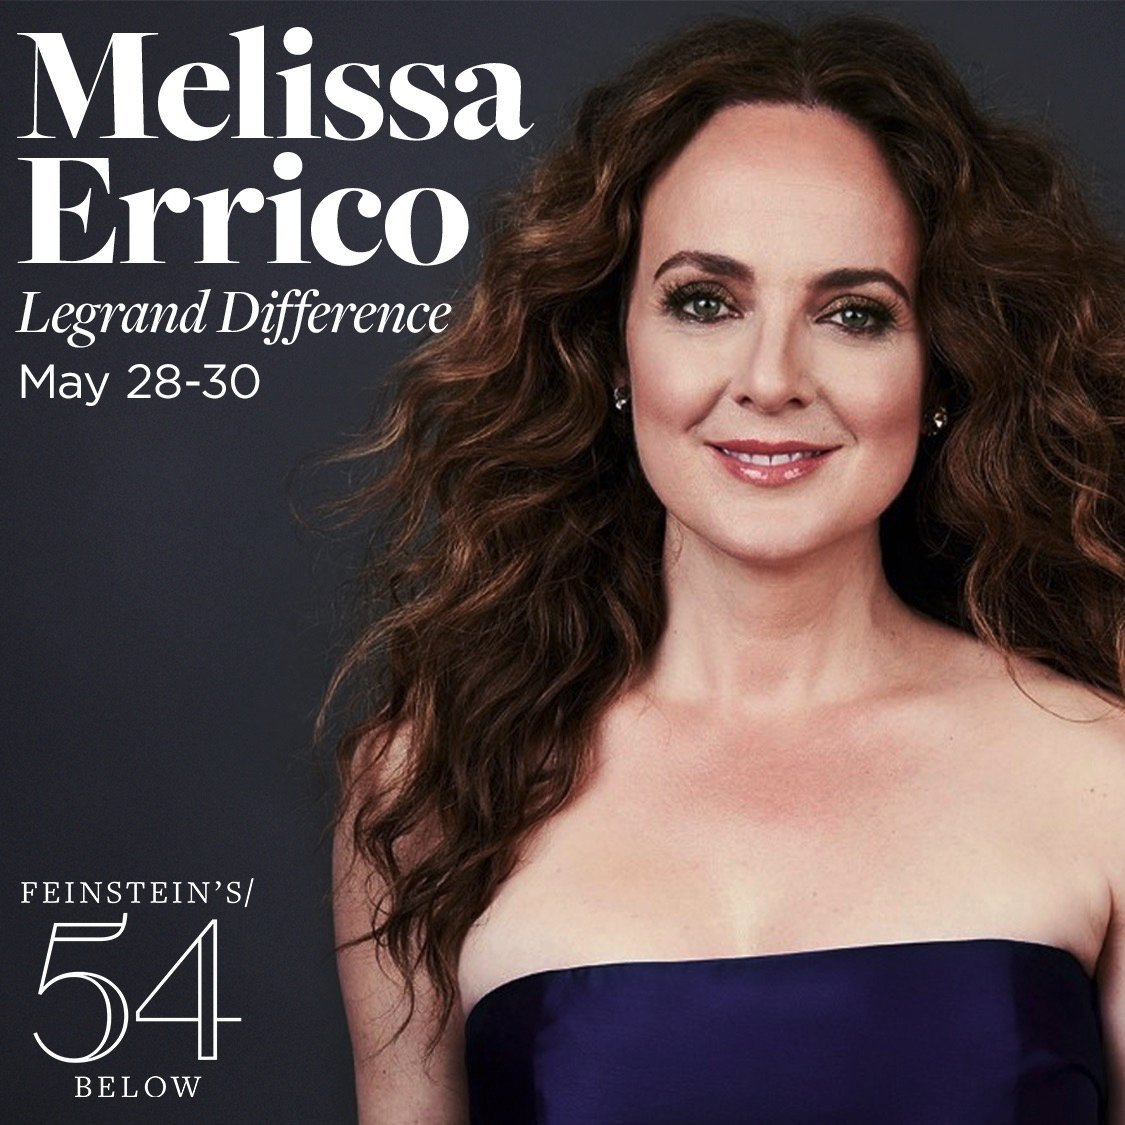 I'm back! Tickets on sale now for LEGRAND DIFFERENCE at @54Below, May 28-30 - another look at the music of #MichelLegrand - his style, his romance, his jazz, his windmills. http://bit.ly/LegrandDifference…